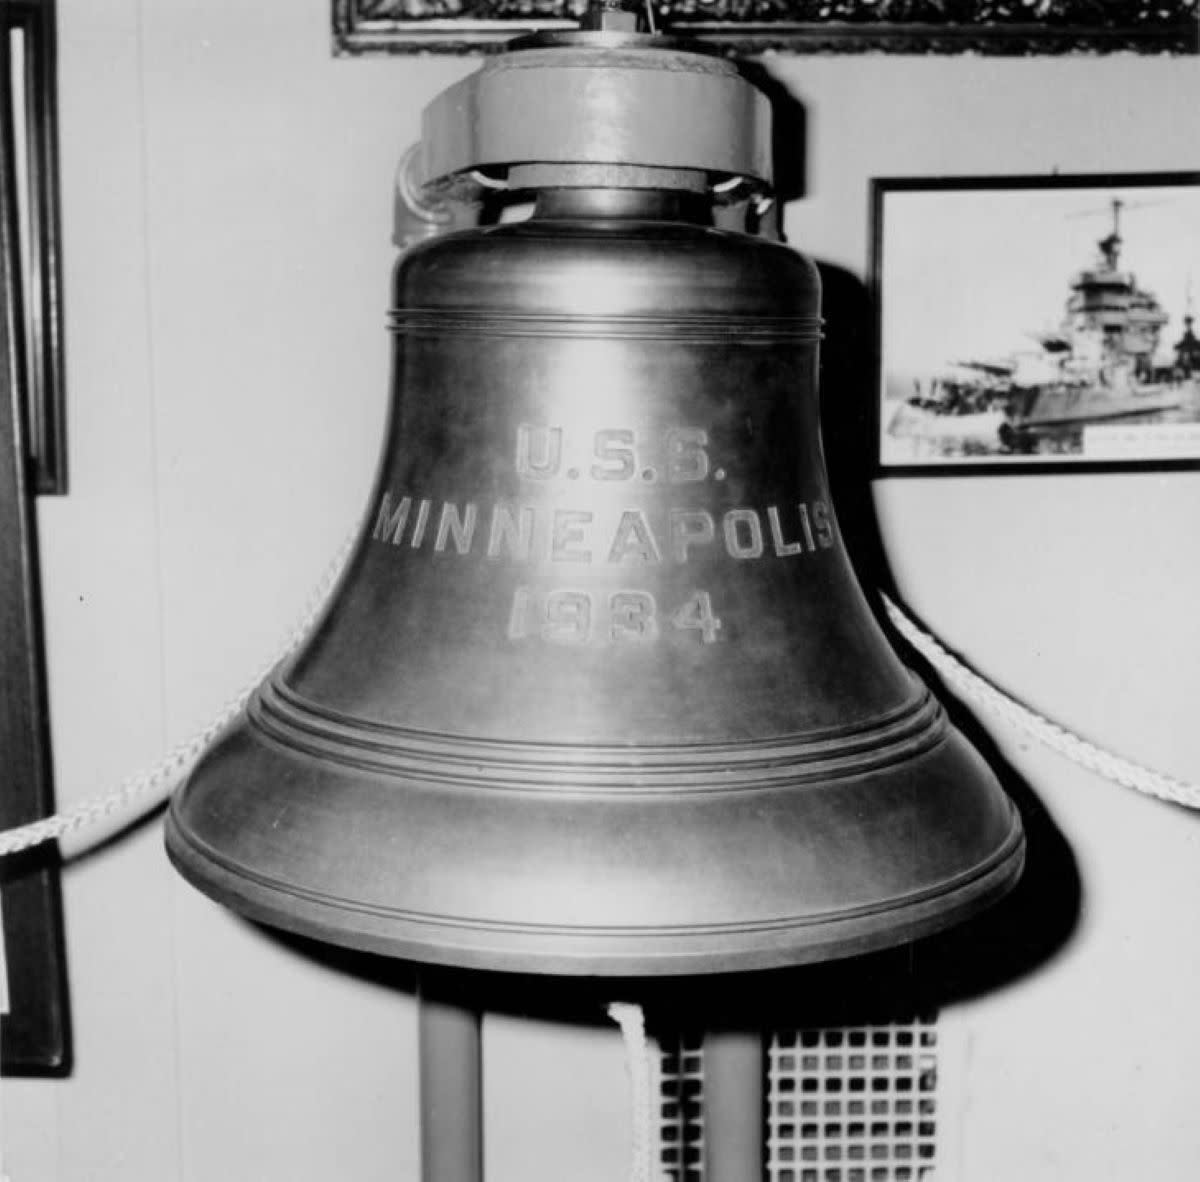 The bell from the USS Minneapolis, one of the most decorated U.S. Naval Ships in World War II.